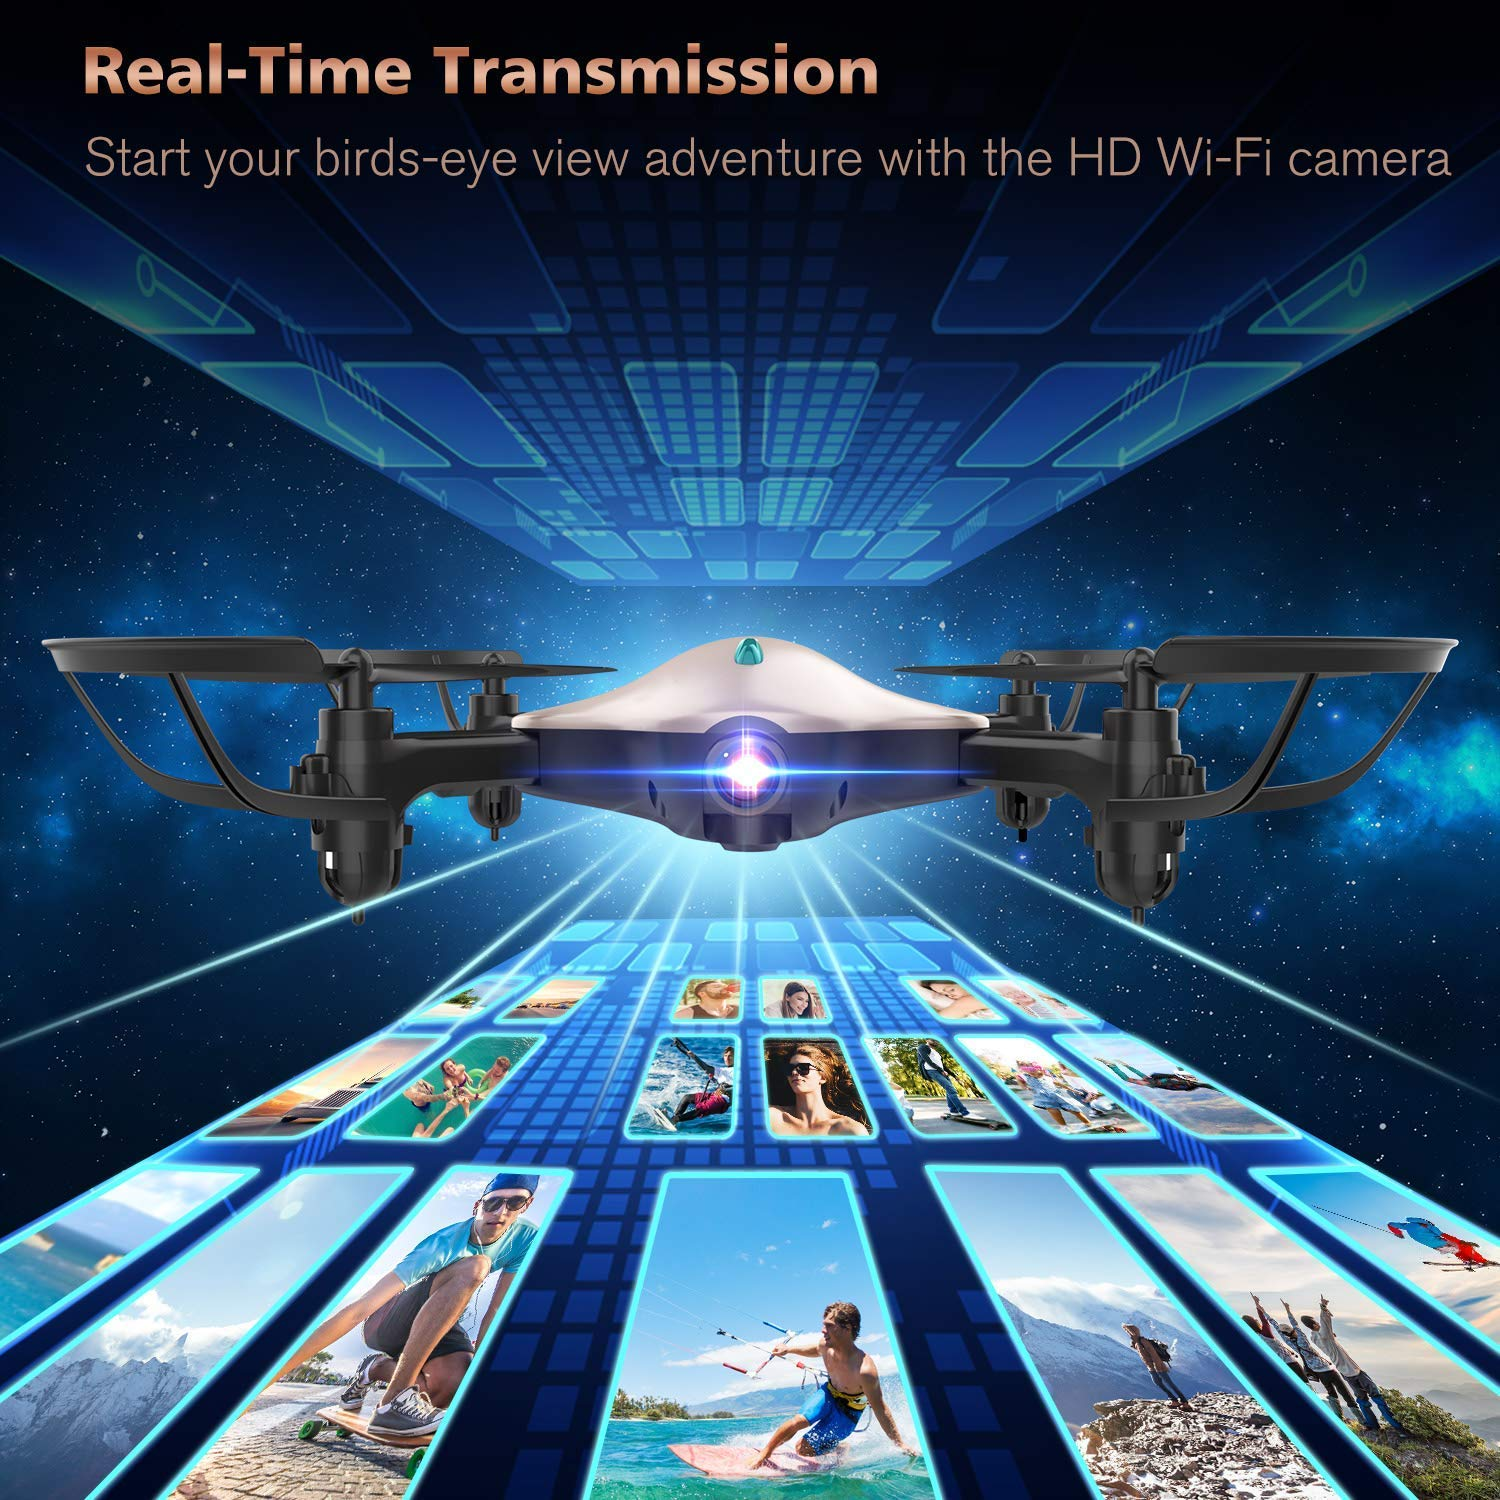 DBPOWER FPV RC Drone with 720P HD Wi-Fi Camera Live Video Feed 2.4GHz 6-Axis Gyro Quadcopter for Kids /& Beginners Foldable Arms Altitude Hold Golden One Key Take Off//Landing Headless Mode